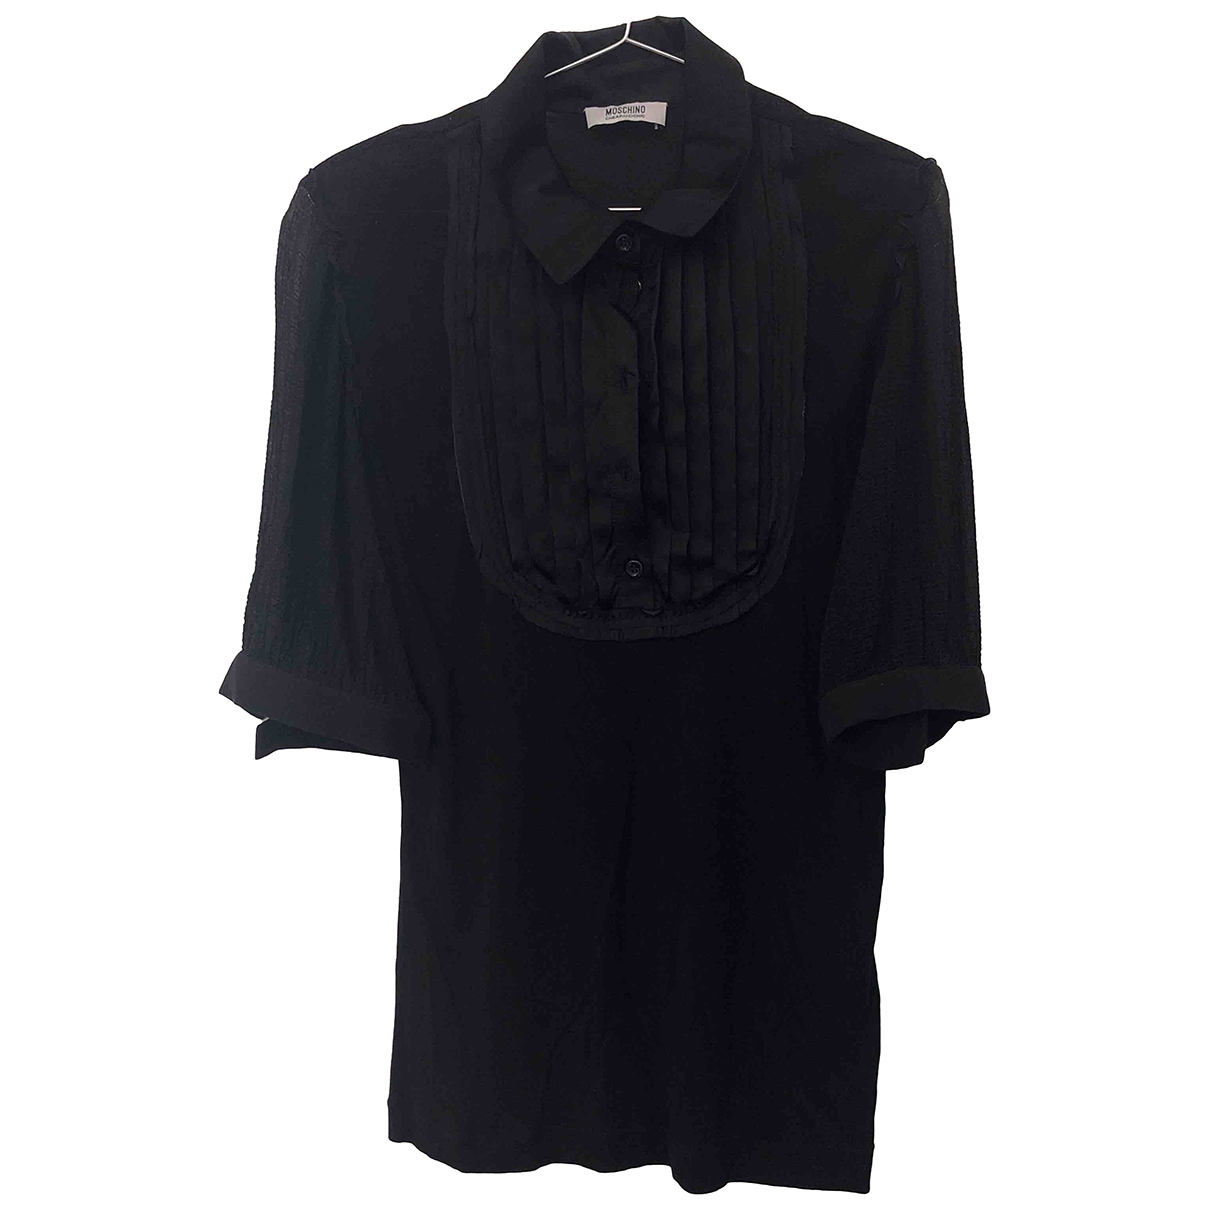 Moschino Cheap And Chic \N Top in  Schwarz Baumwolle